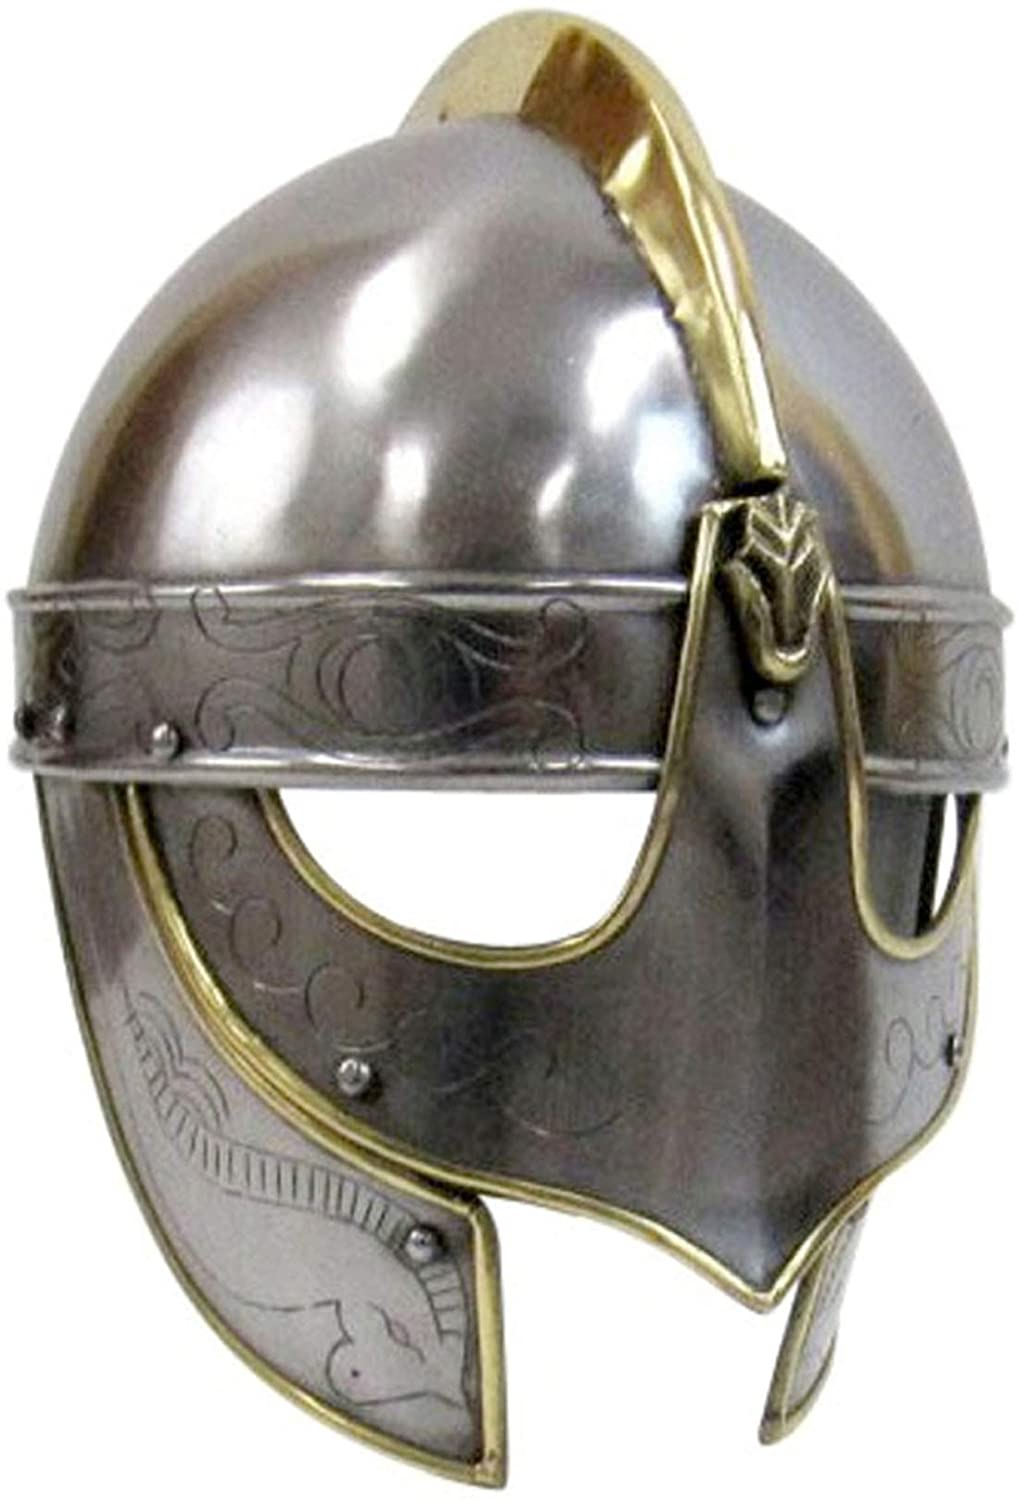 AnNafi Handcrafted Viking Wolf Armor Helmet| Medieval Metal Knight Helmets| with Brass Accents | Wearable for Adult | Medieval Costumes